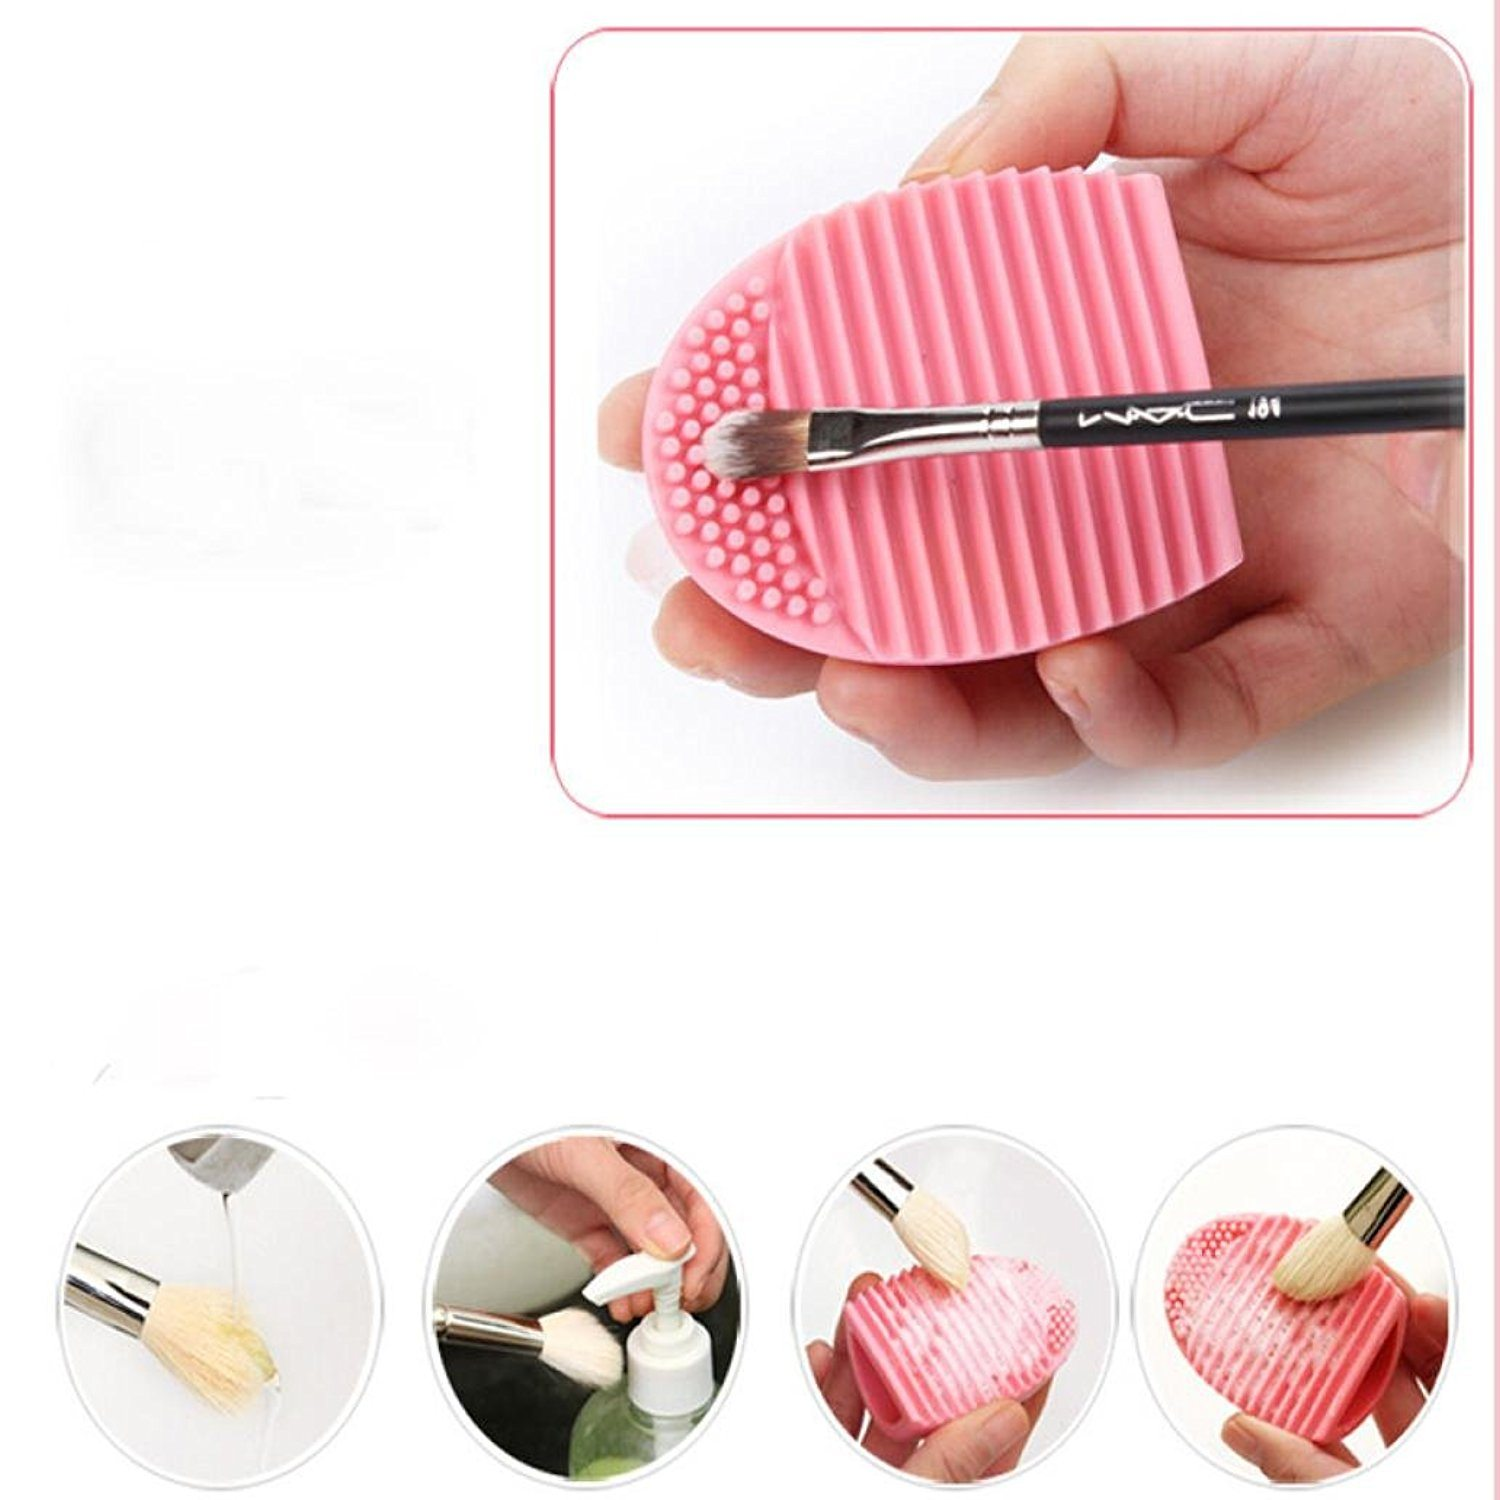 61wN65n63iL. UL1500  - Cleaning MakeUp Washing Brush Silica Glove Scrubber Board Cosmetic Clean Tools (Pink)